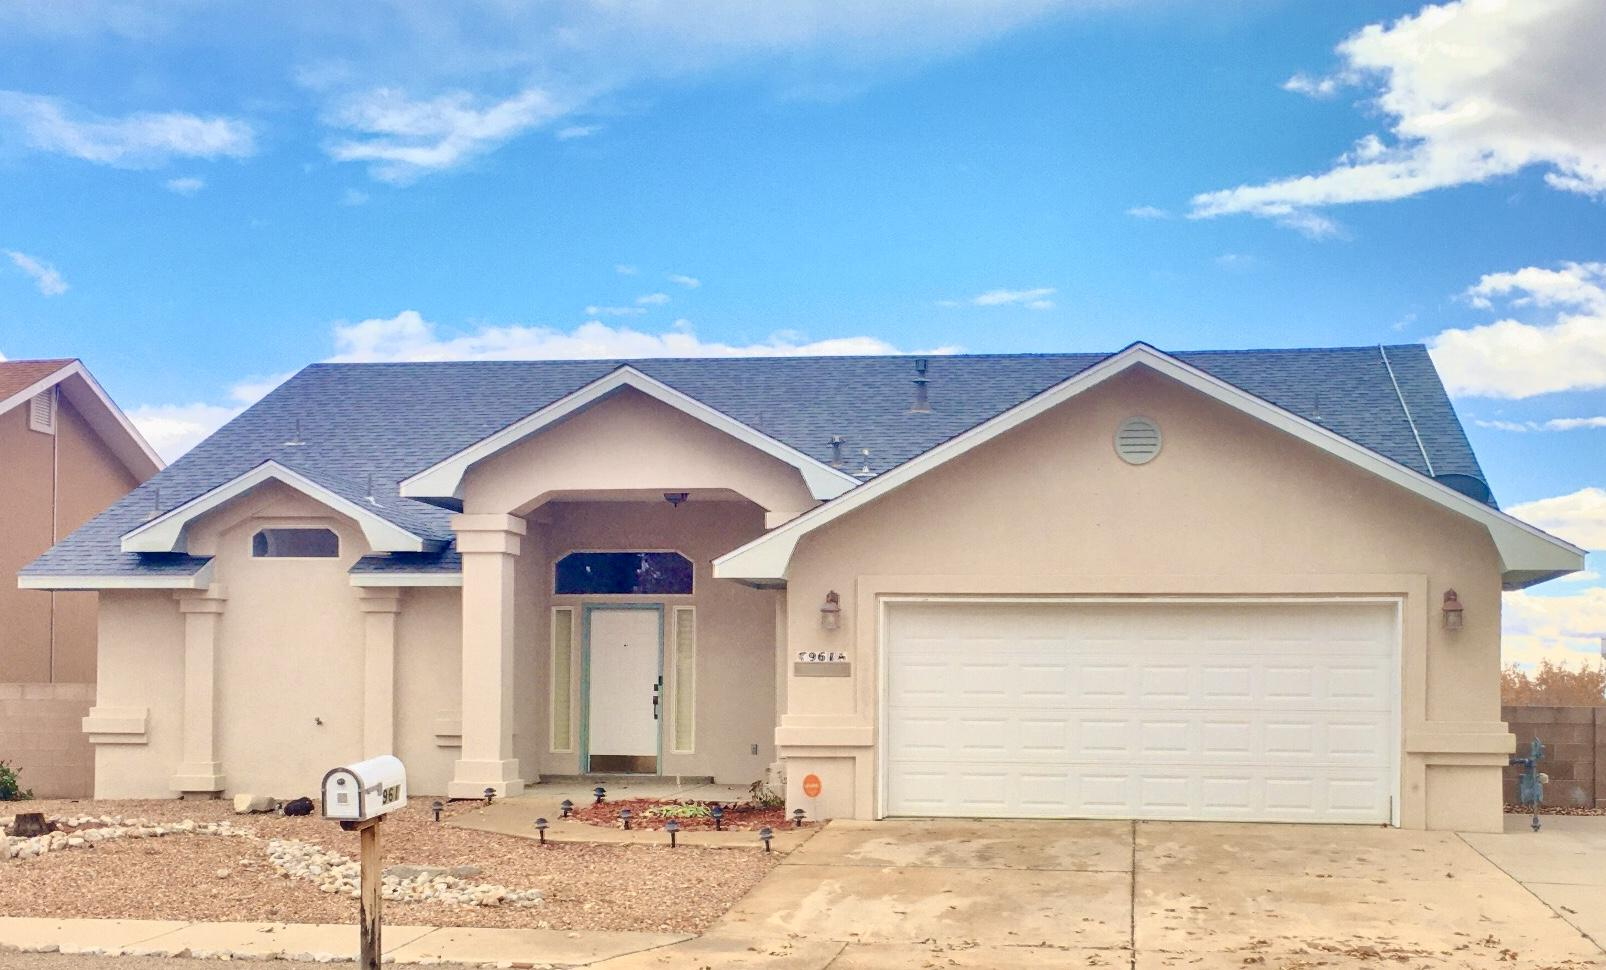 961 PINZON Street NW, Los Lunas, NM 87031 - Los Lunas, NM real estate listing